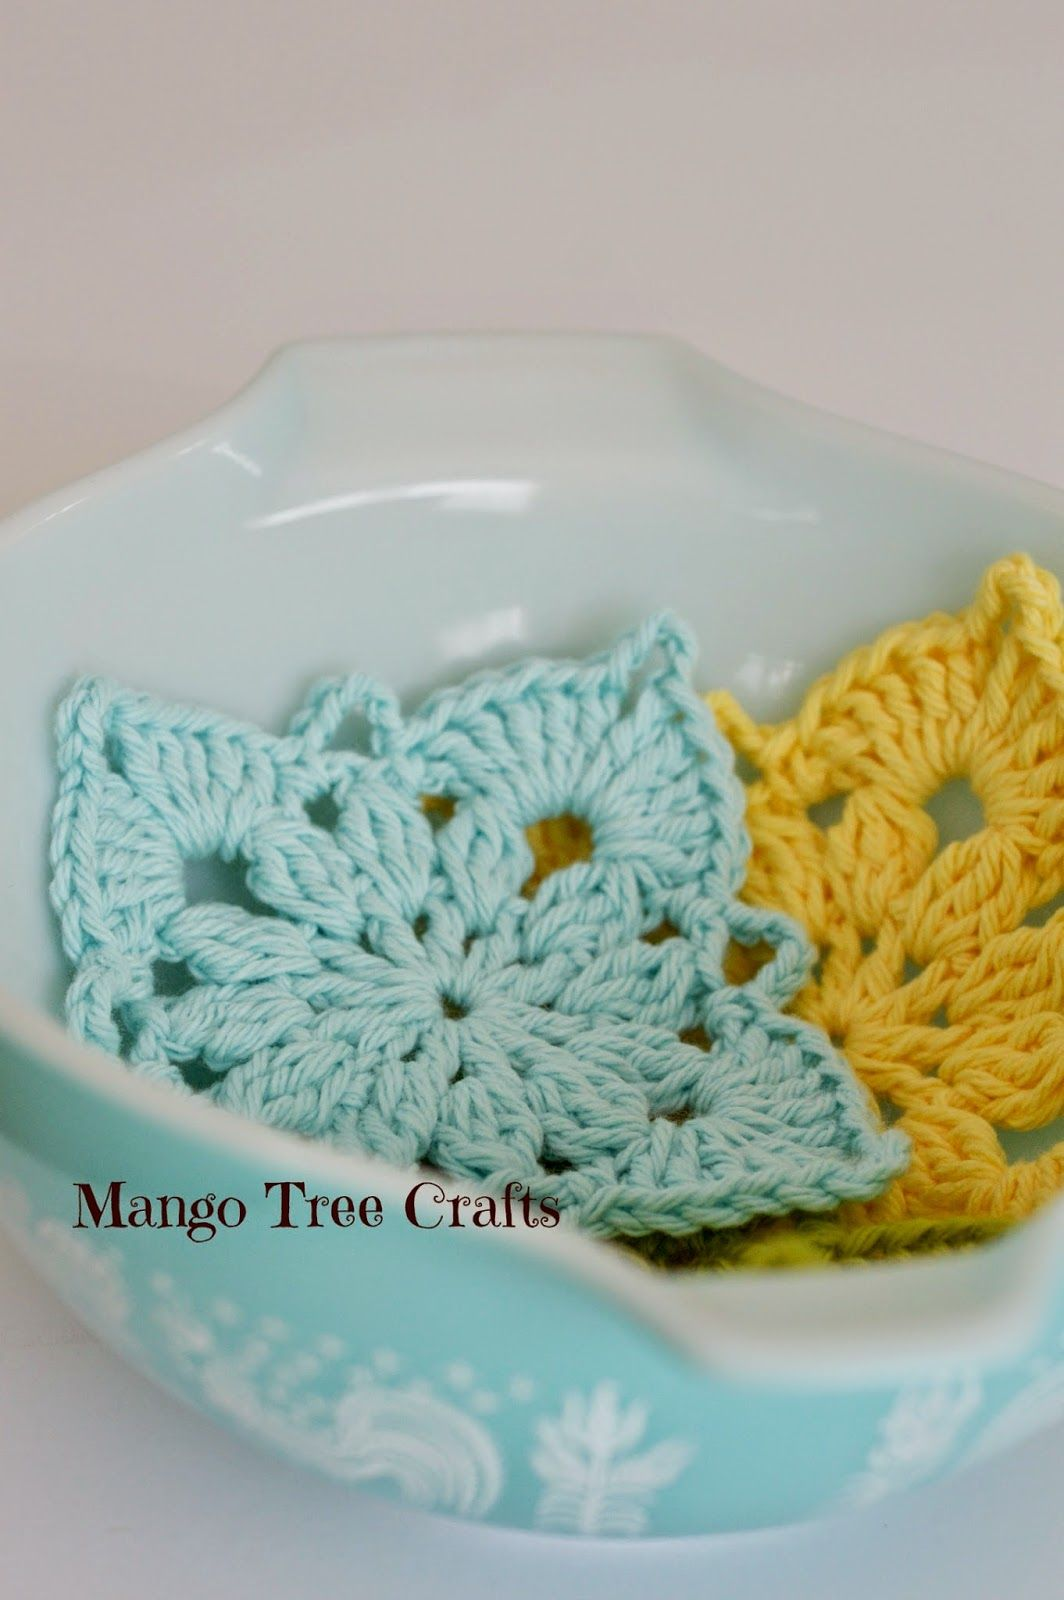 Mango tree crafts free crochet patterns creative crochet mango tree crafts free crochet patterns crochet square pattern and photo tutorial bankloansurffo Image collections